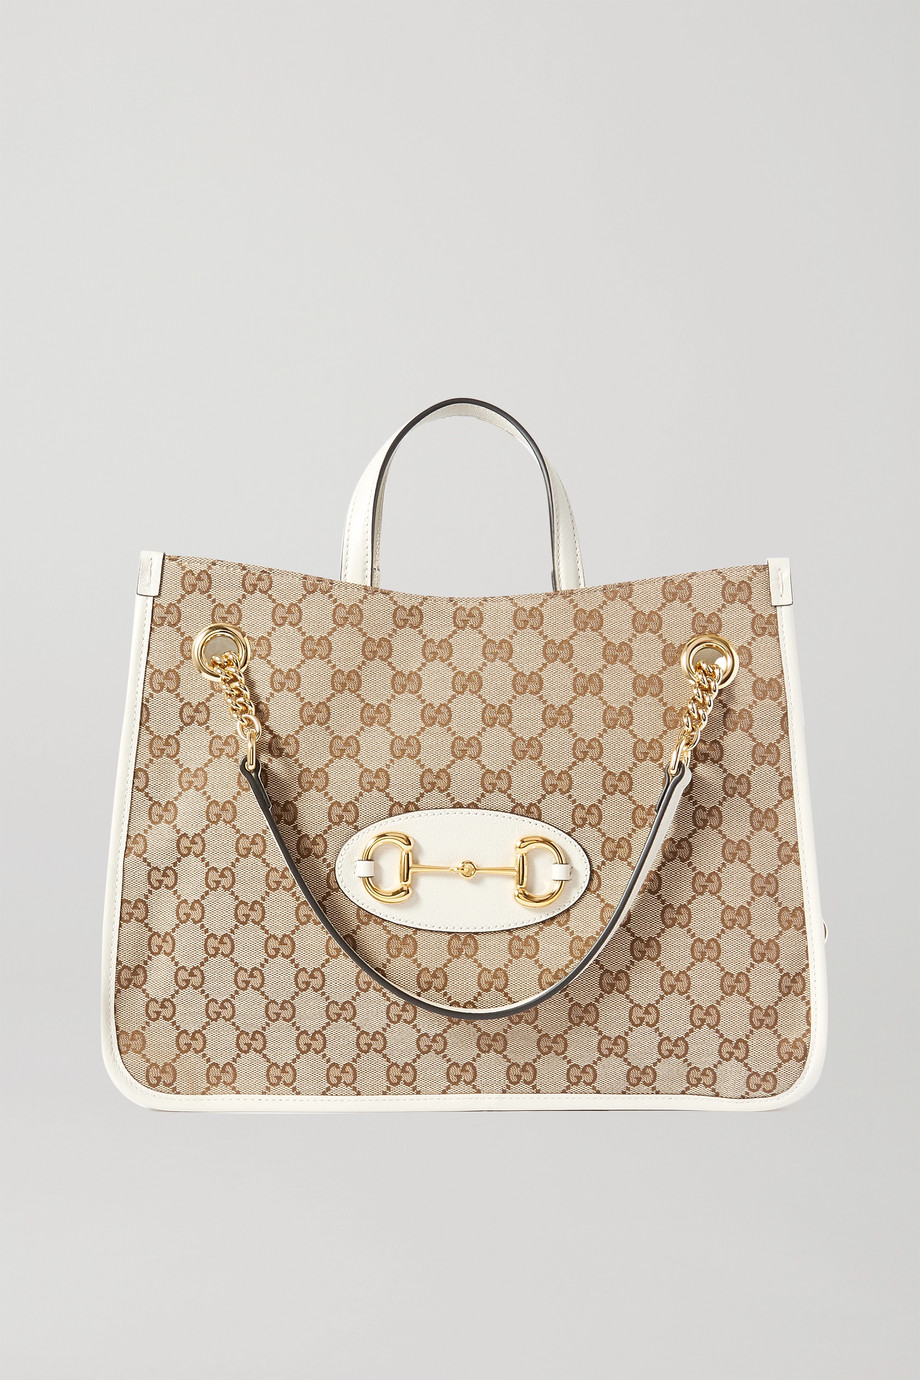 Gucci 1955 Horsebit large leather-trimmed printed coated-canvas tote